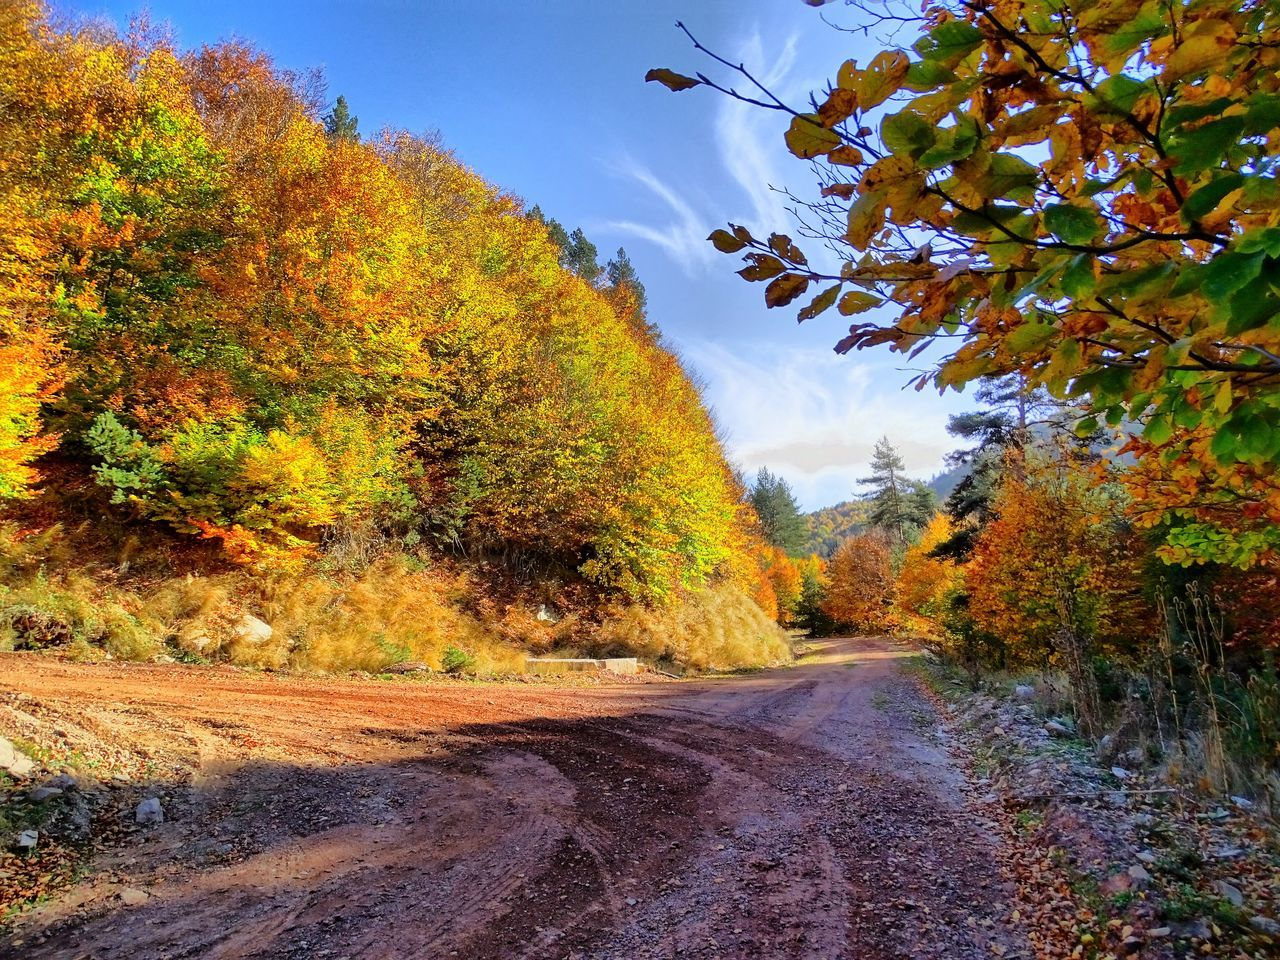 tree, autumn, nature, change, day, beauty in nature, leaf, outdoors, sky, growth, scenics, tranquil scene, no people, tranquility, road, plant, landscape